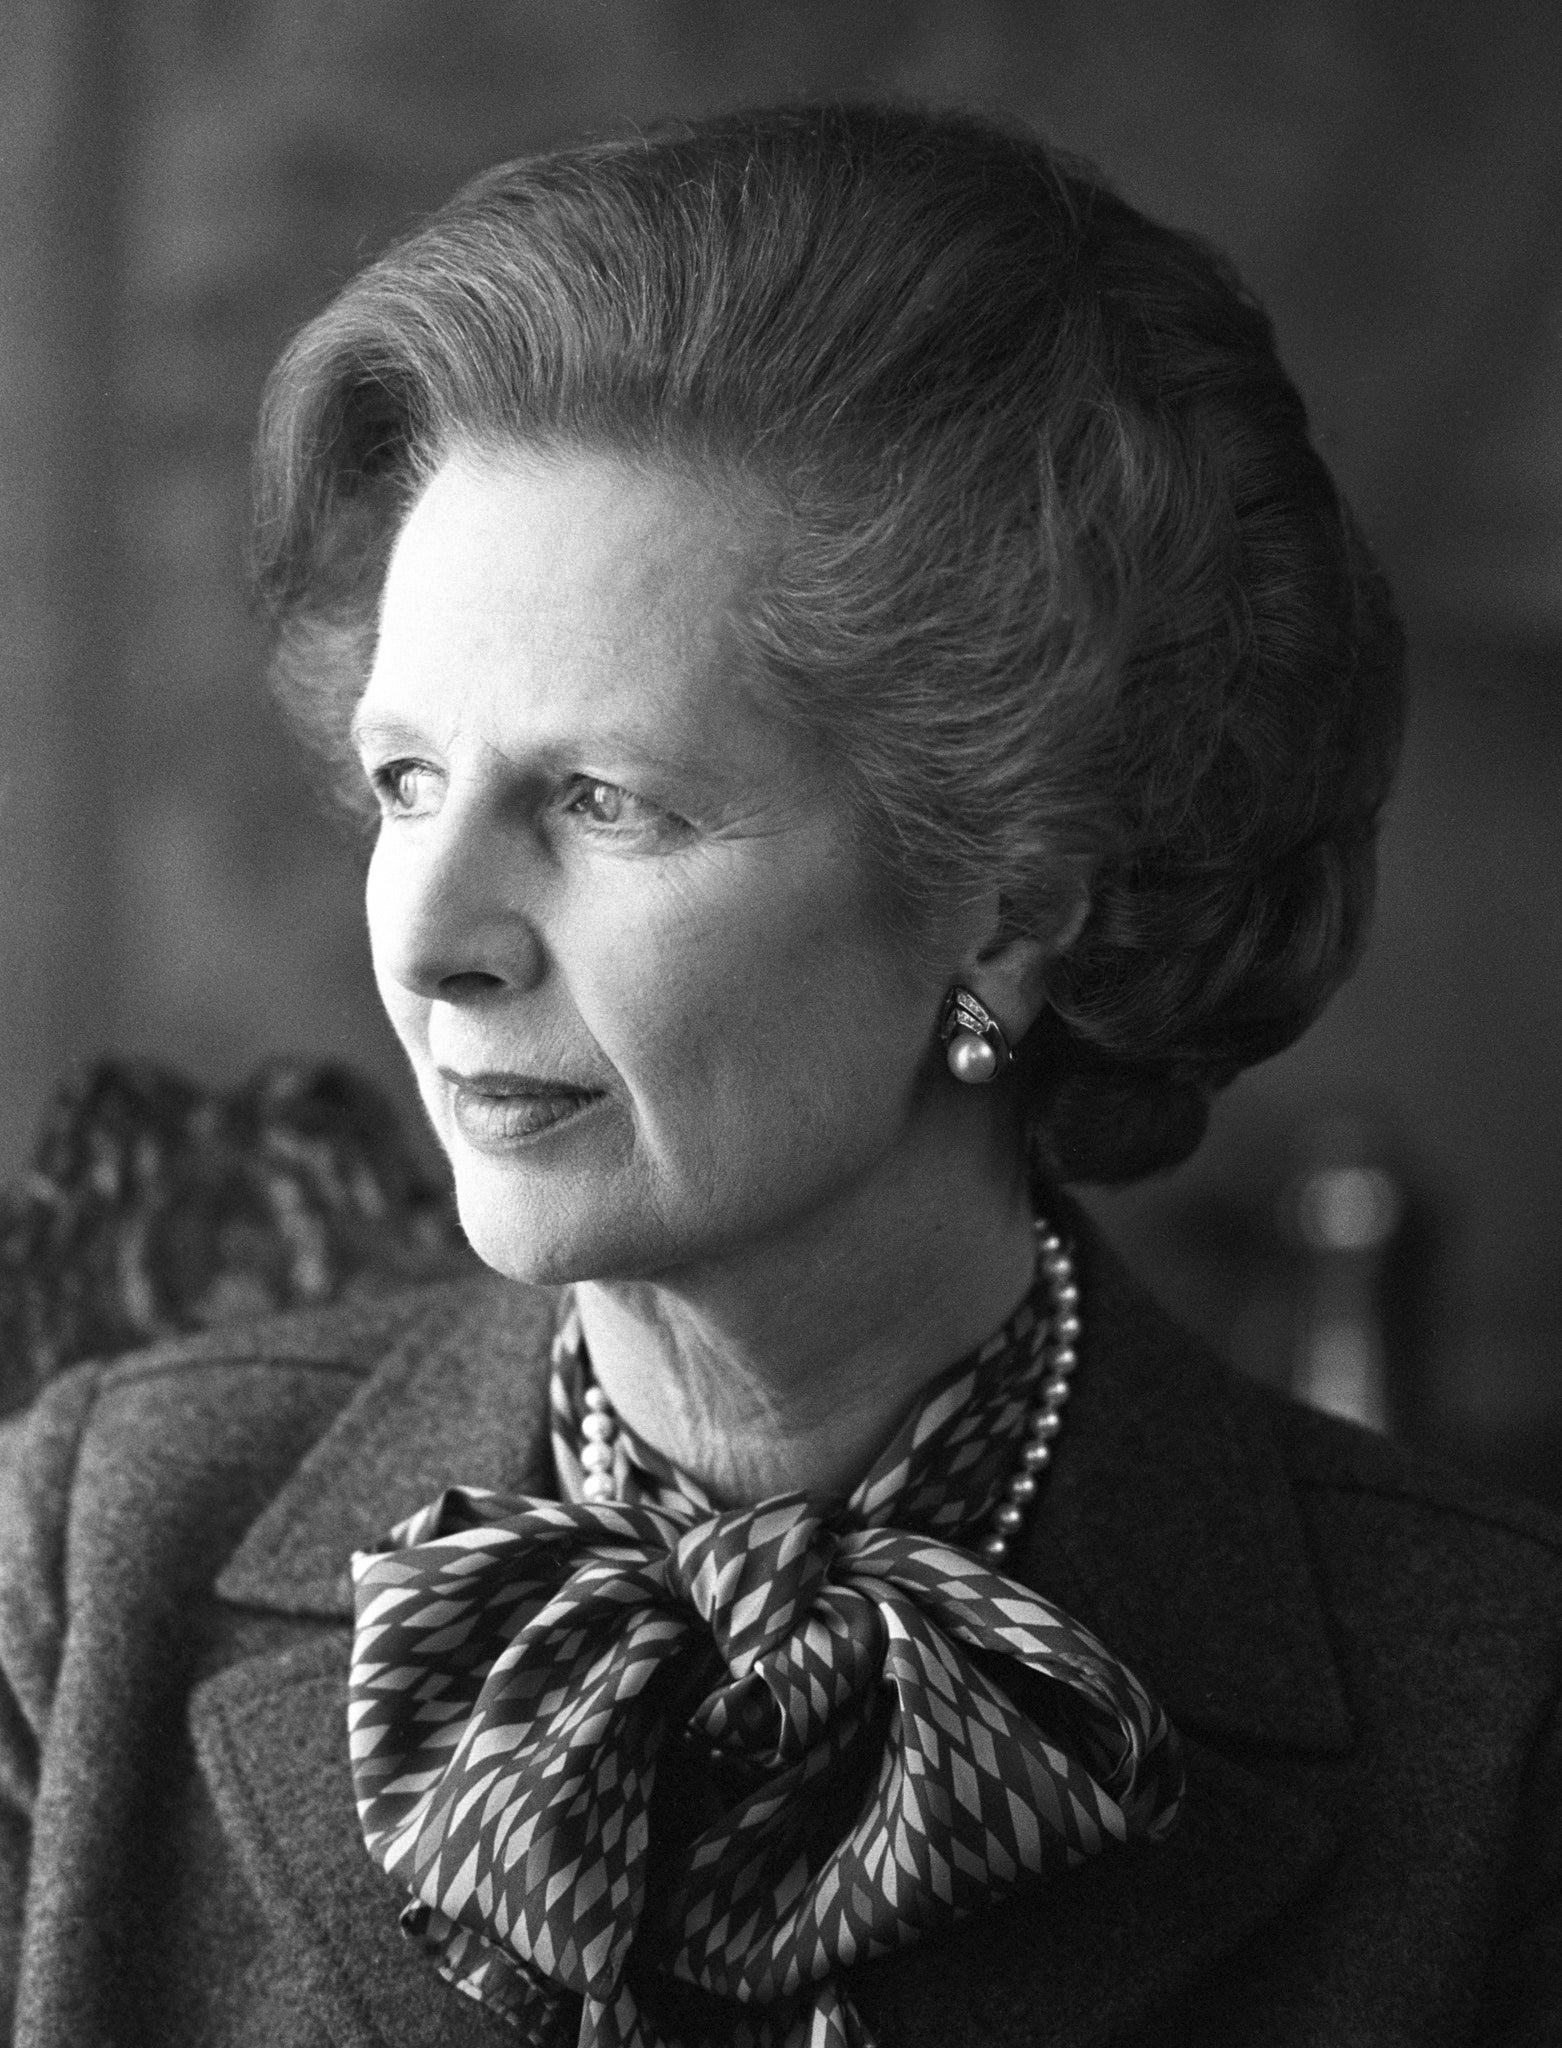 """the ideas and effects of margaret thatchers rule in the united kingdom in the fifth child a novel by Flack was a fiction—a journalist dreamed up by henry james, for his 1888 novel """"the reverberator"""" to pass from the author of """"the golden bowl"""" to the news of the world is to range from one end of the human ph scale to the other, yet james detected the note of pure threat, and wondered how we might cower beneath it."""